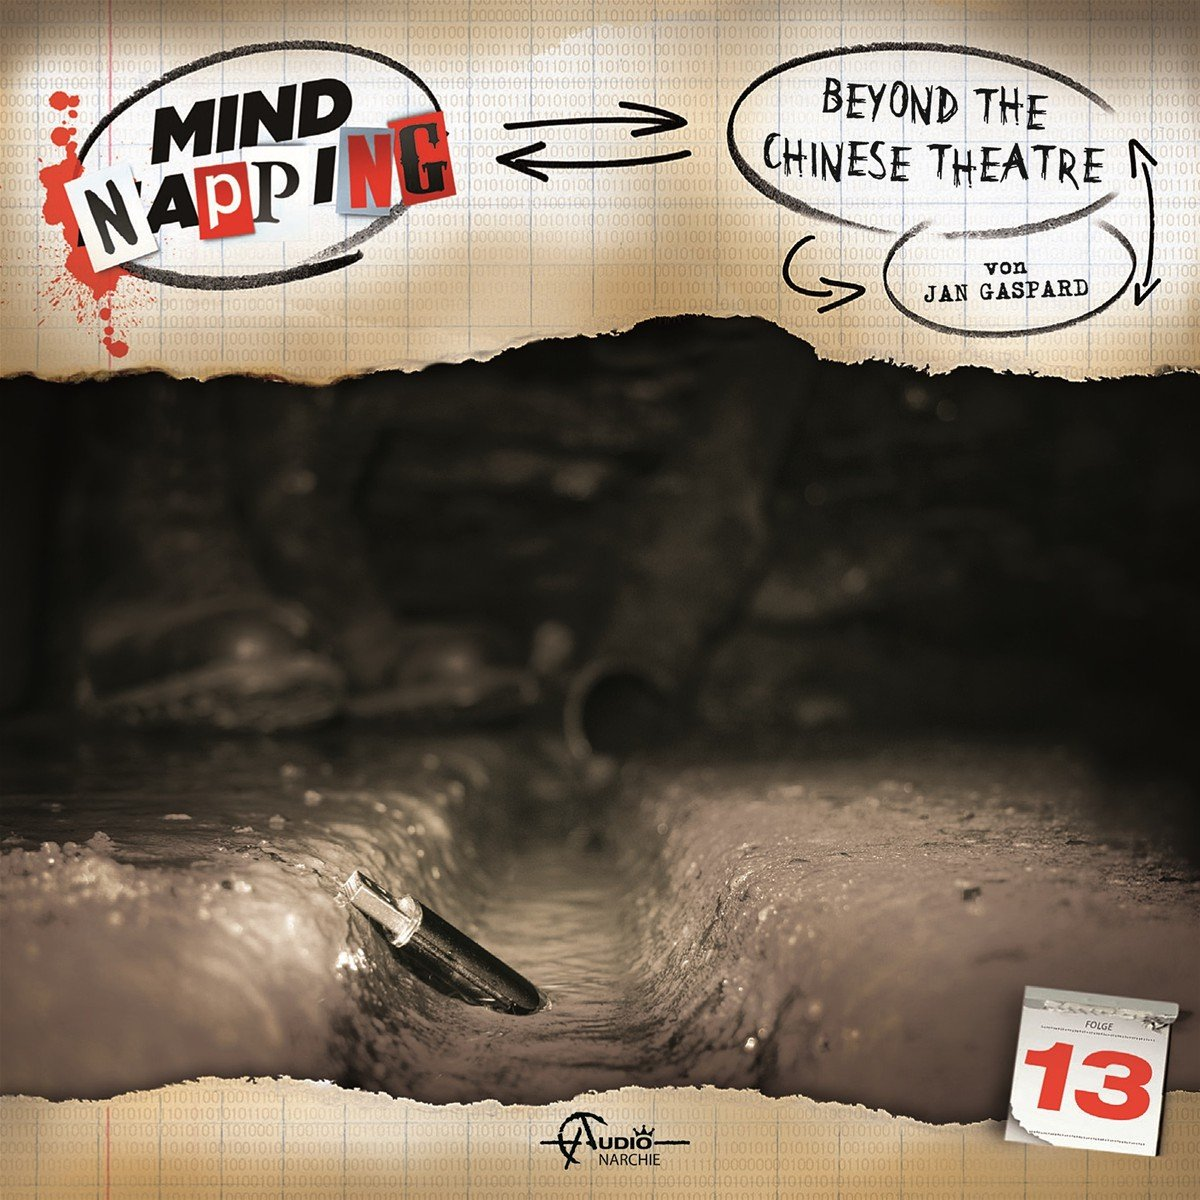 MindNapping Super intense SALE Recommendation 13 BEYOND CHINESE THEATRE THE